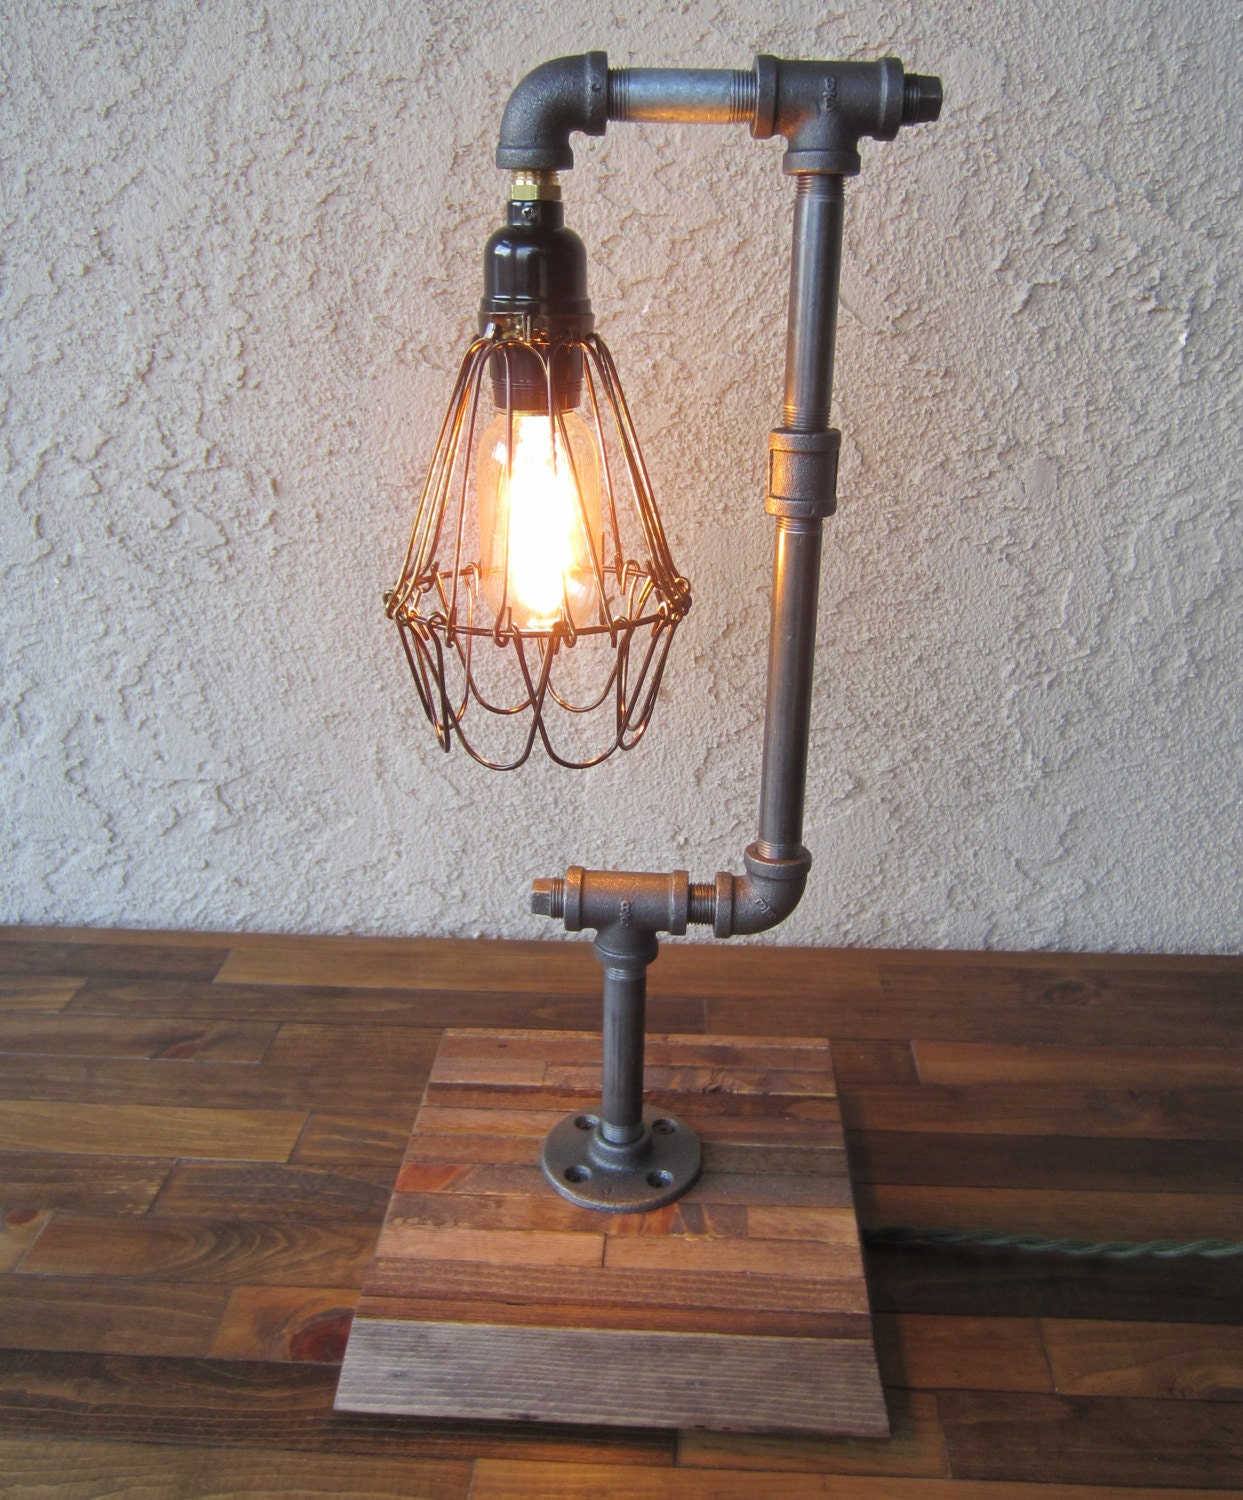 Edison Trouble Light Desk Lamp Vertical, Pipe, Reclaimed Wood Base ...